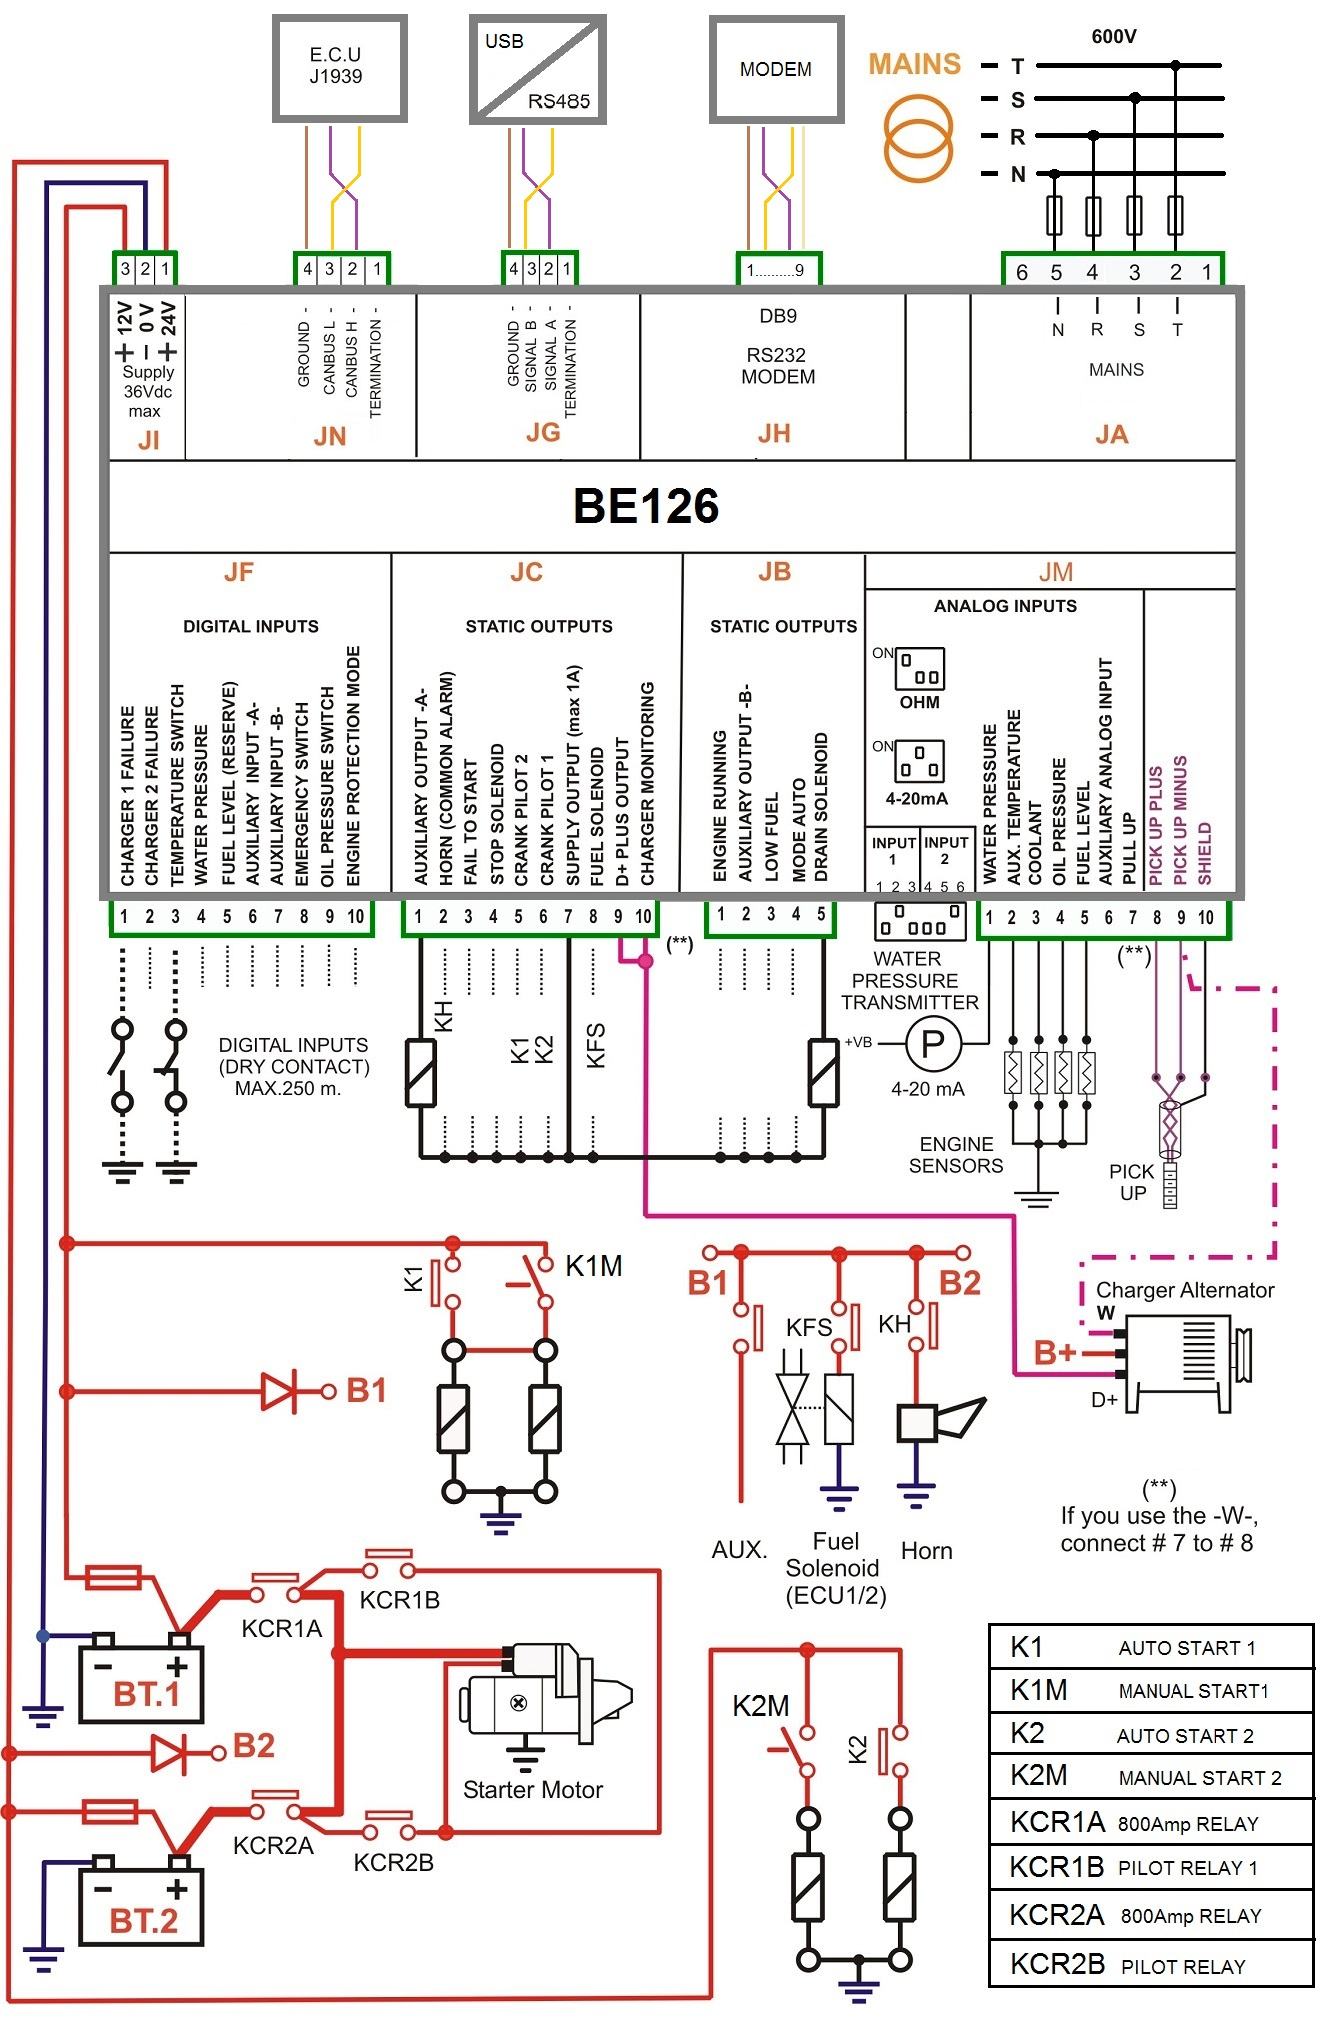 NFPA20 fire pump controller wiring diagram pump motor wiring diagram 1081 pool motor wiring diagram \u2022 wiring gecko spa wiring diagram at soozxer.org